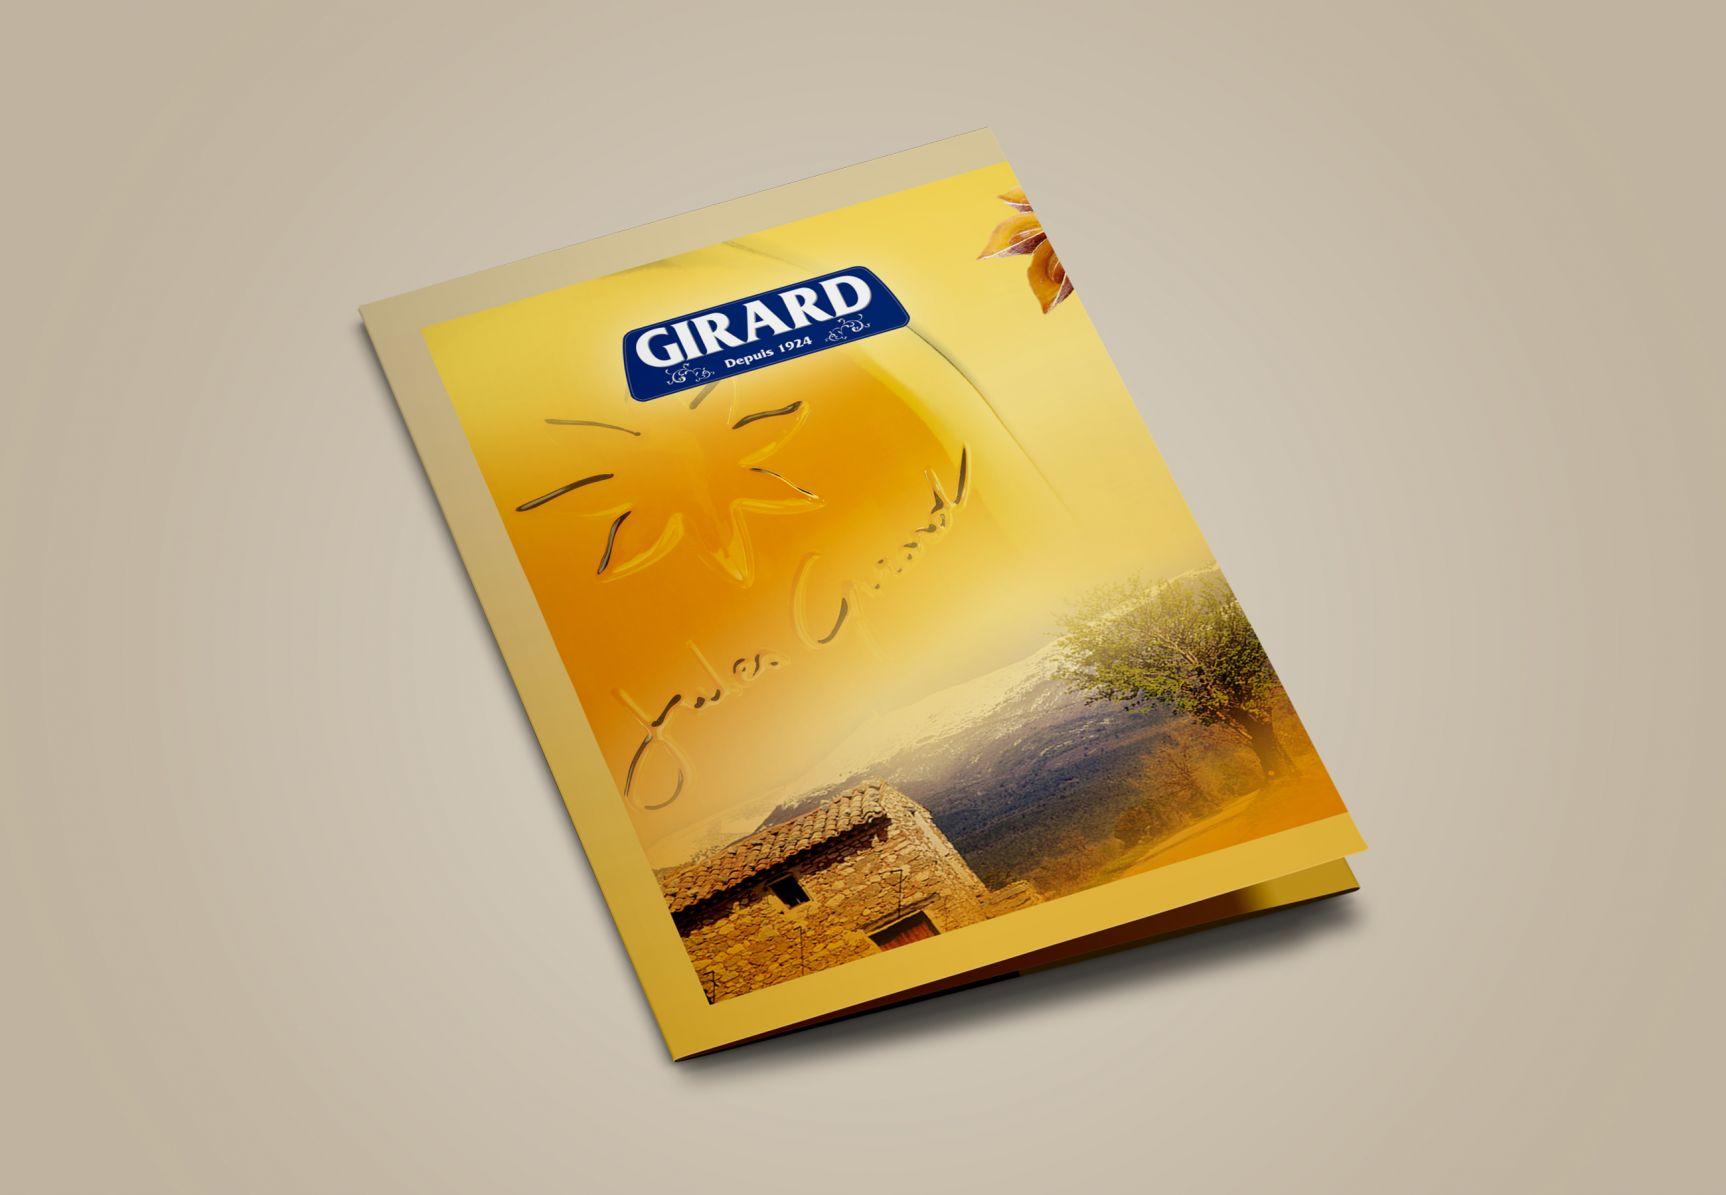 Pastis Girard Brochure Couverture